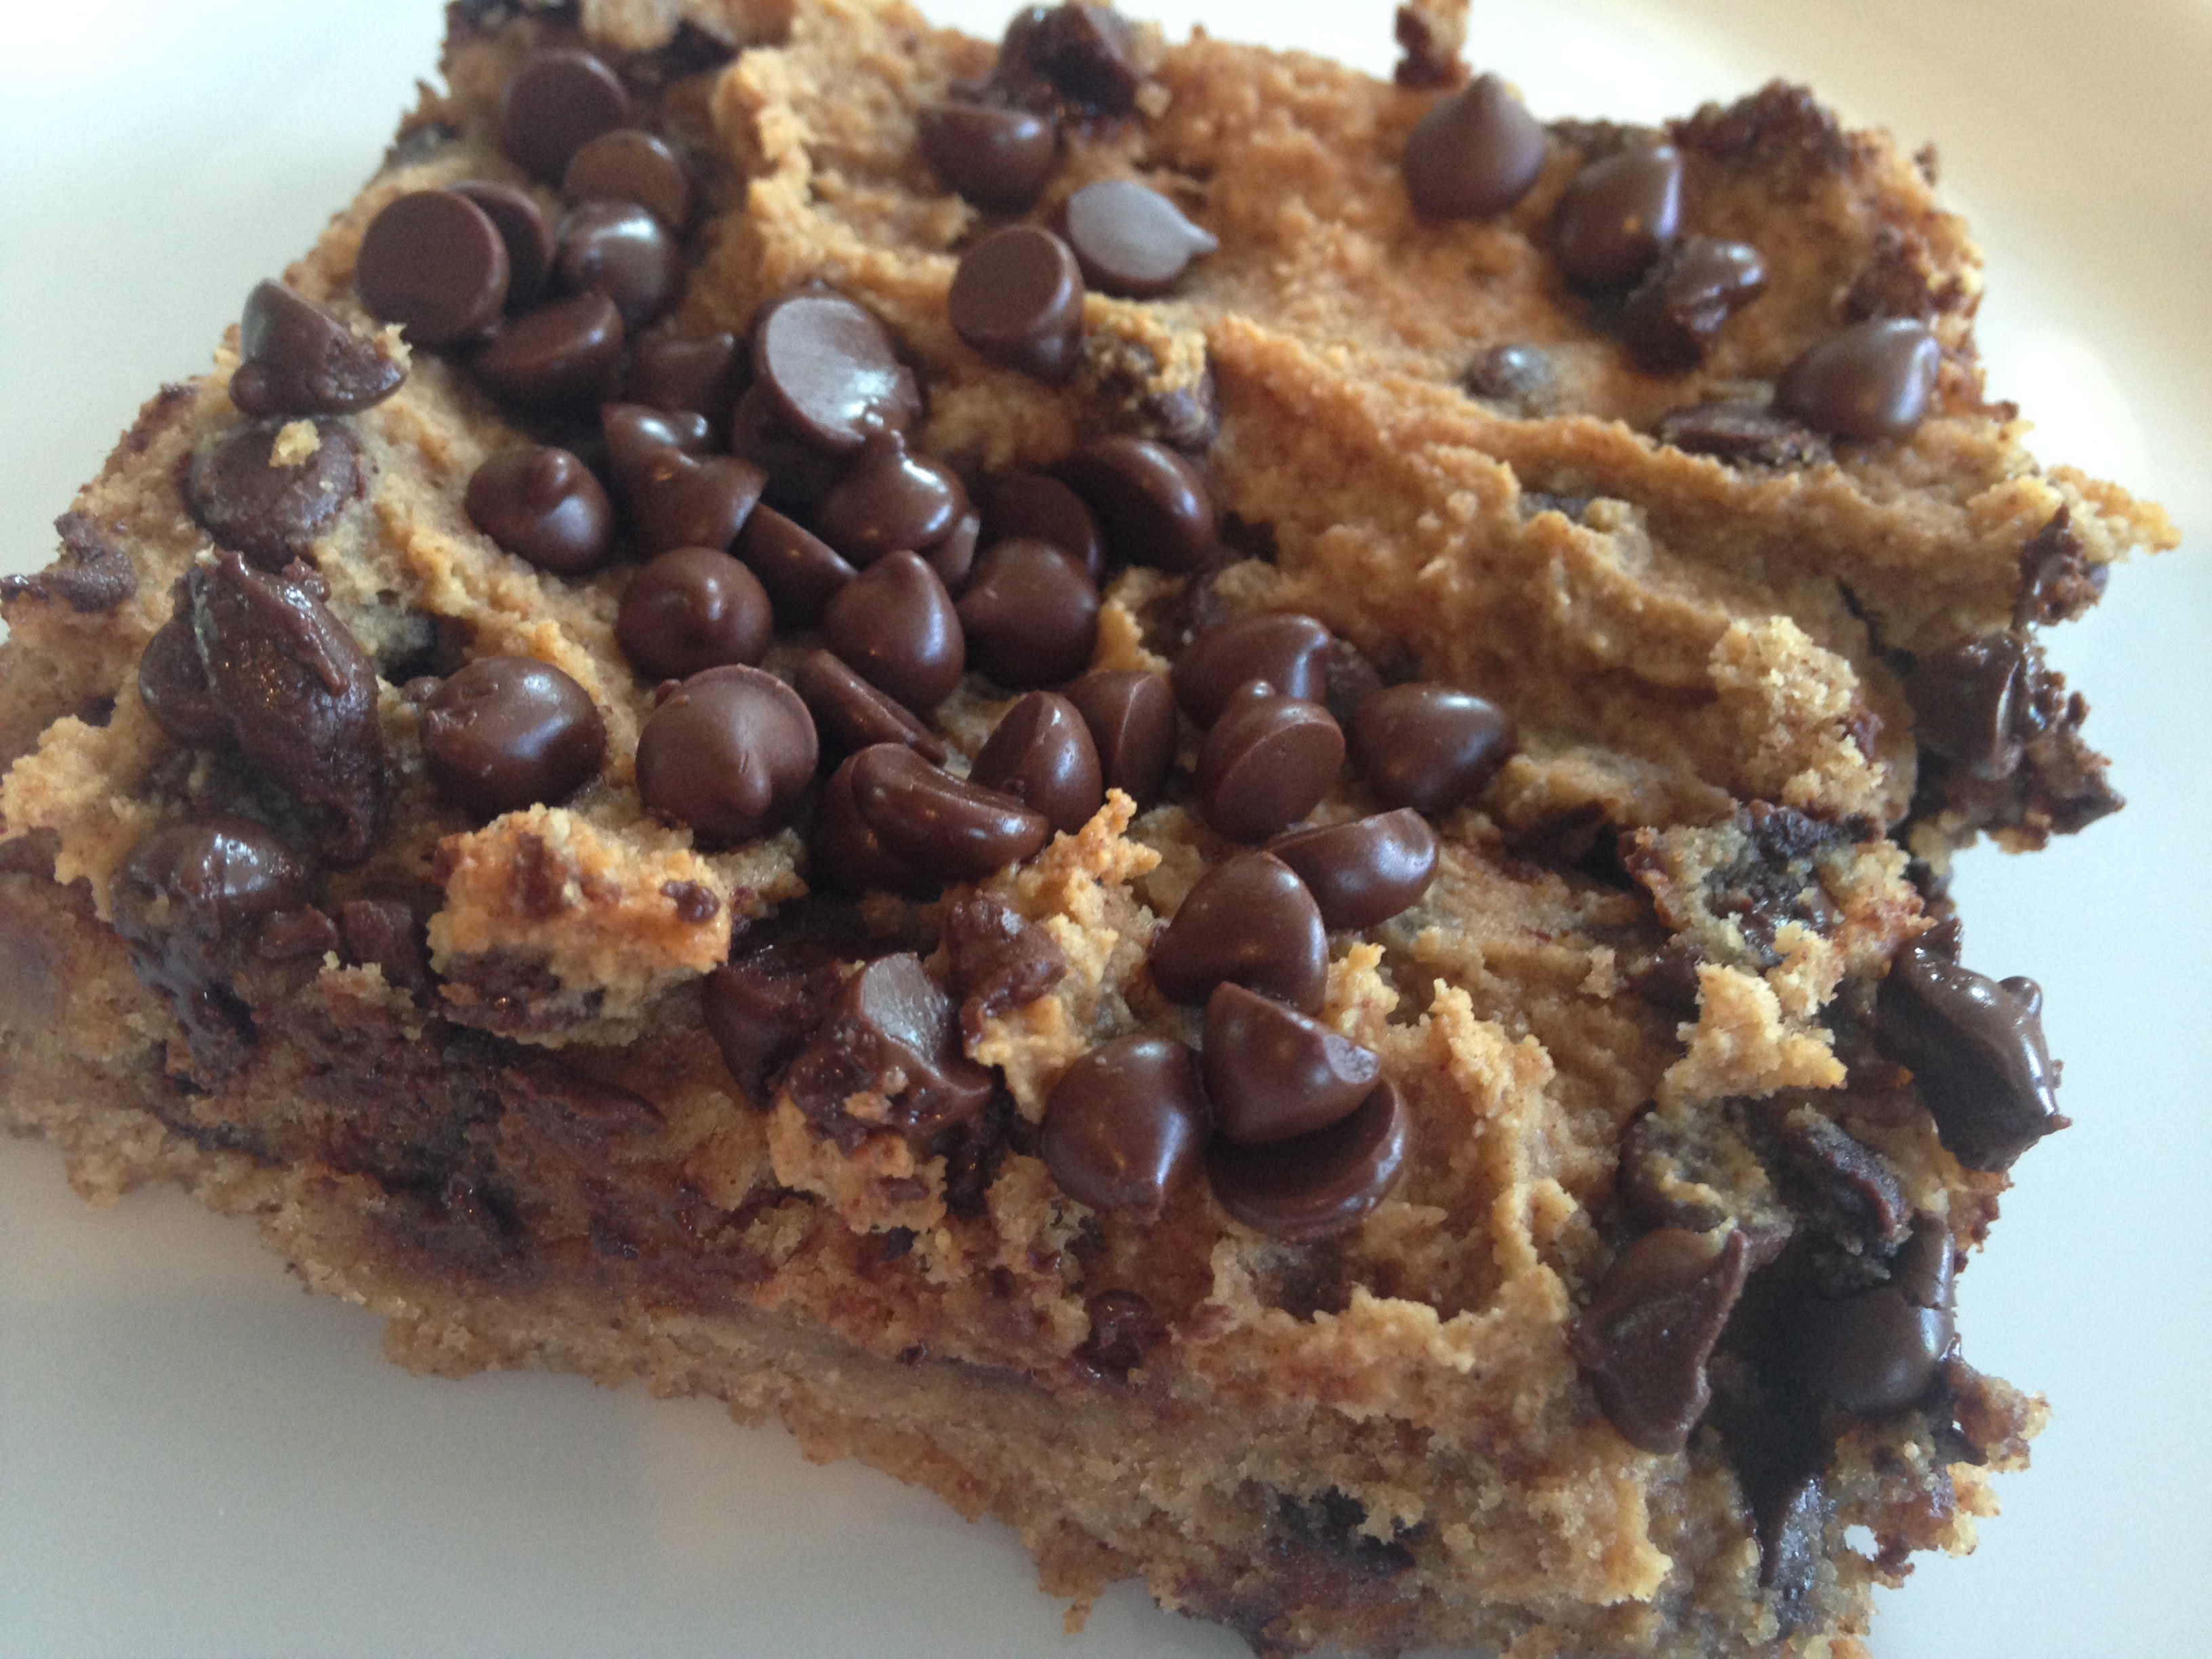 Banana Chocolate Chip Cookie Bars